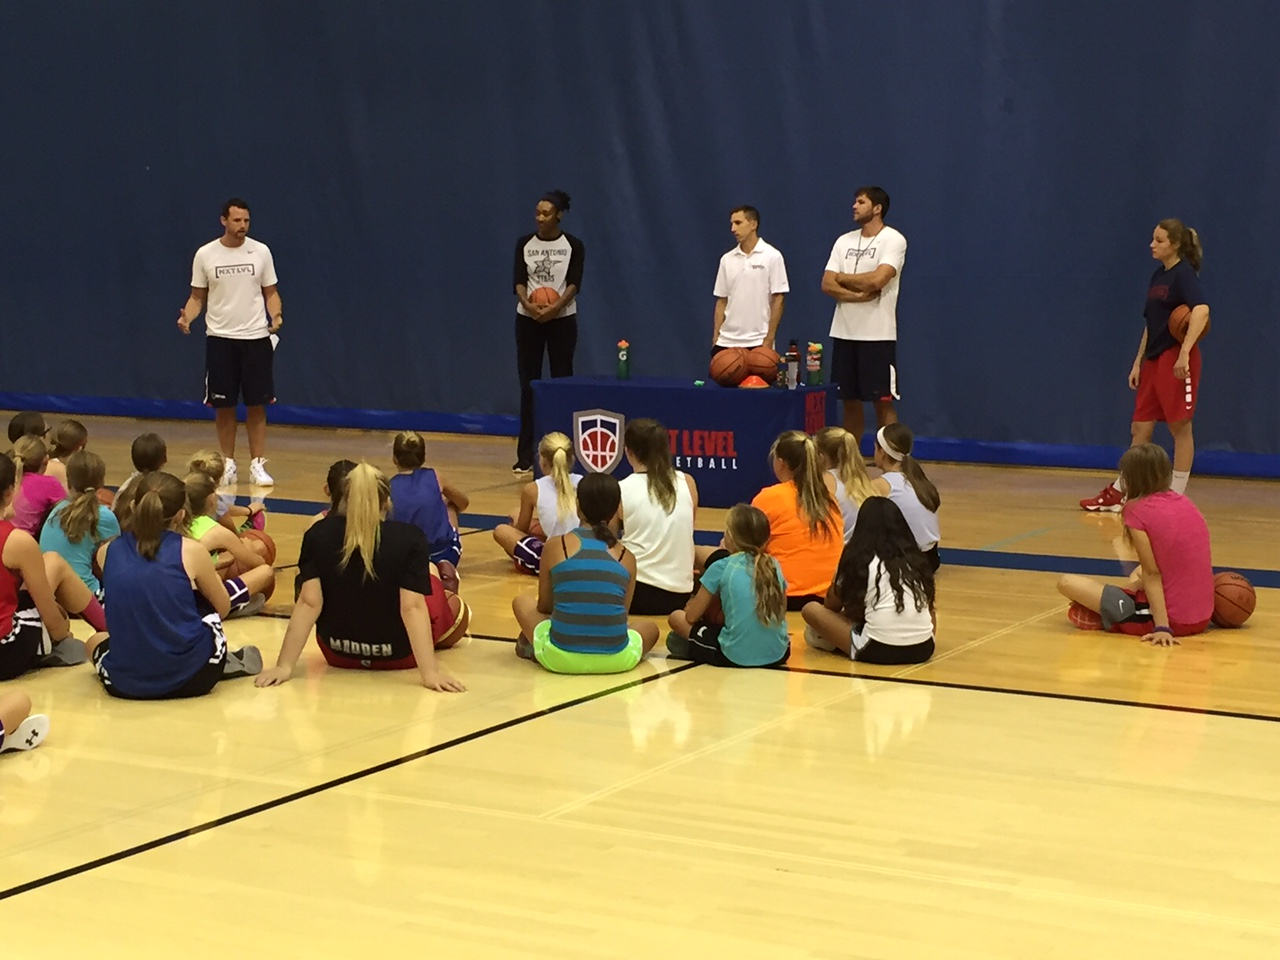 Wrapping up the clinic with some final words of encouragement followed by a Q&A!